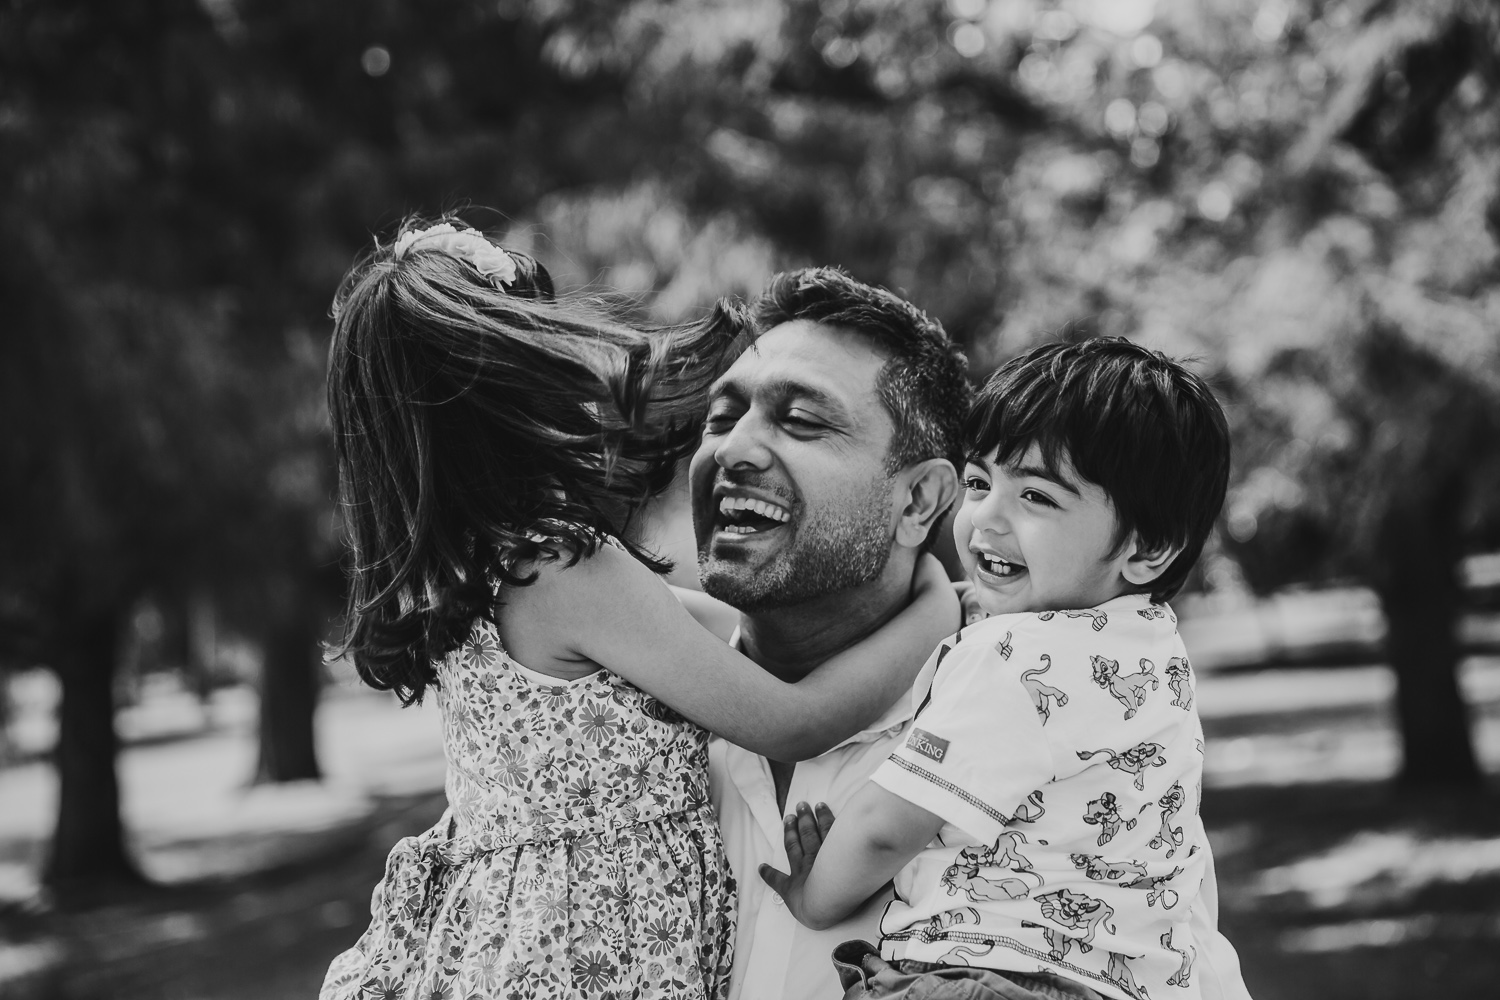 father laughs with and hugs his two children - one boy one girl